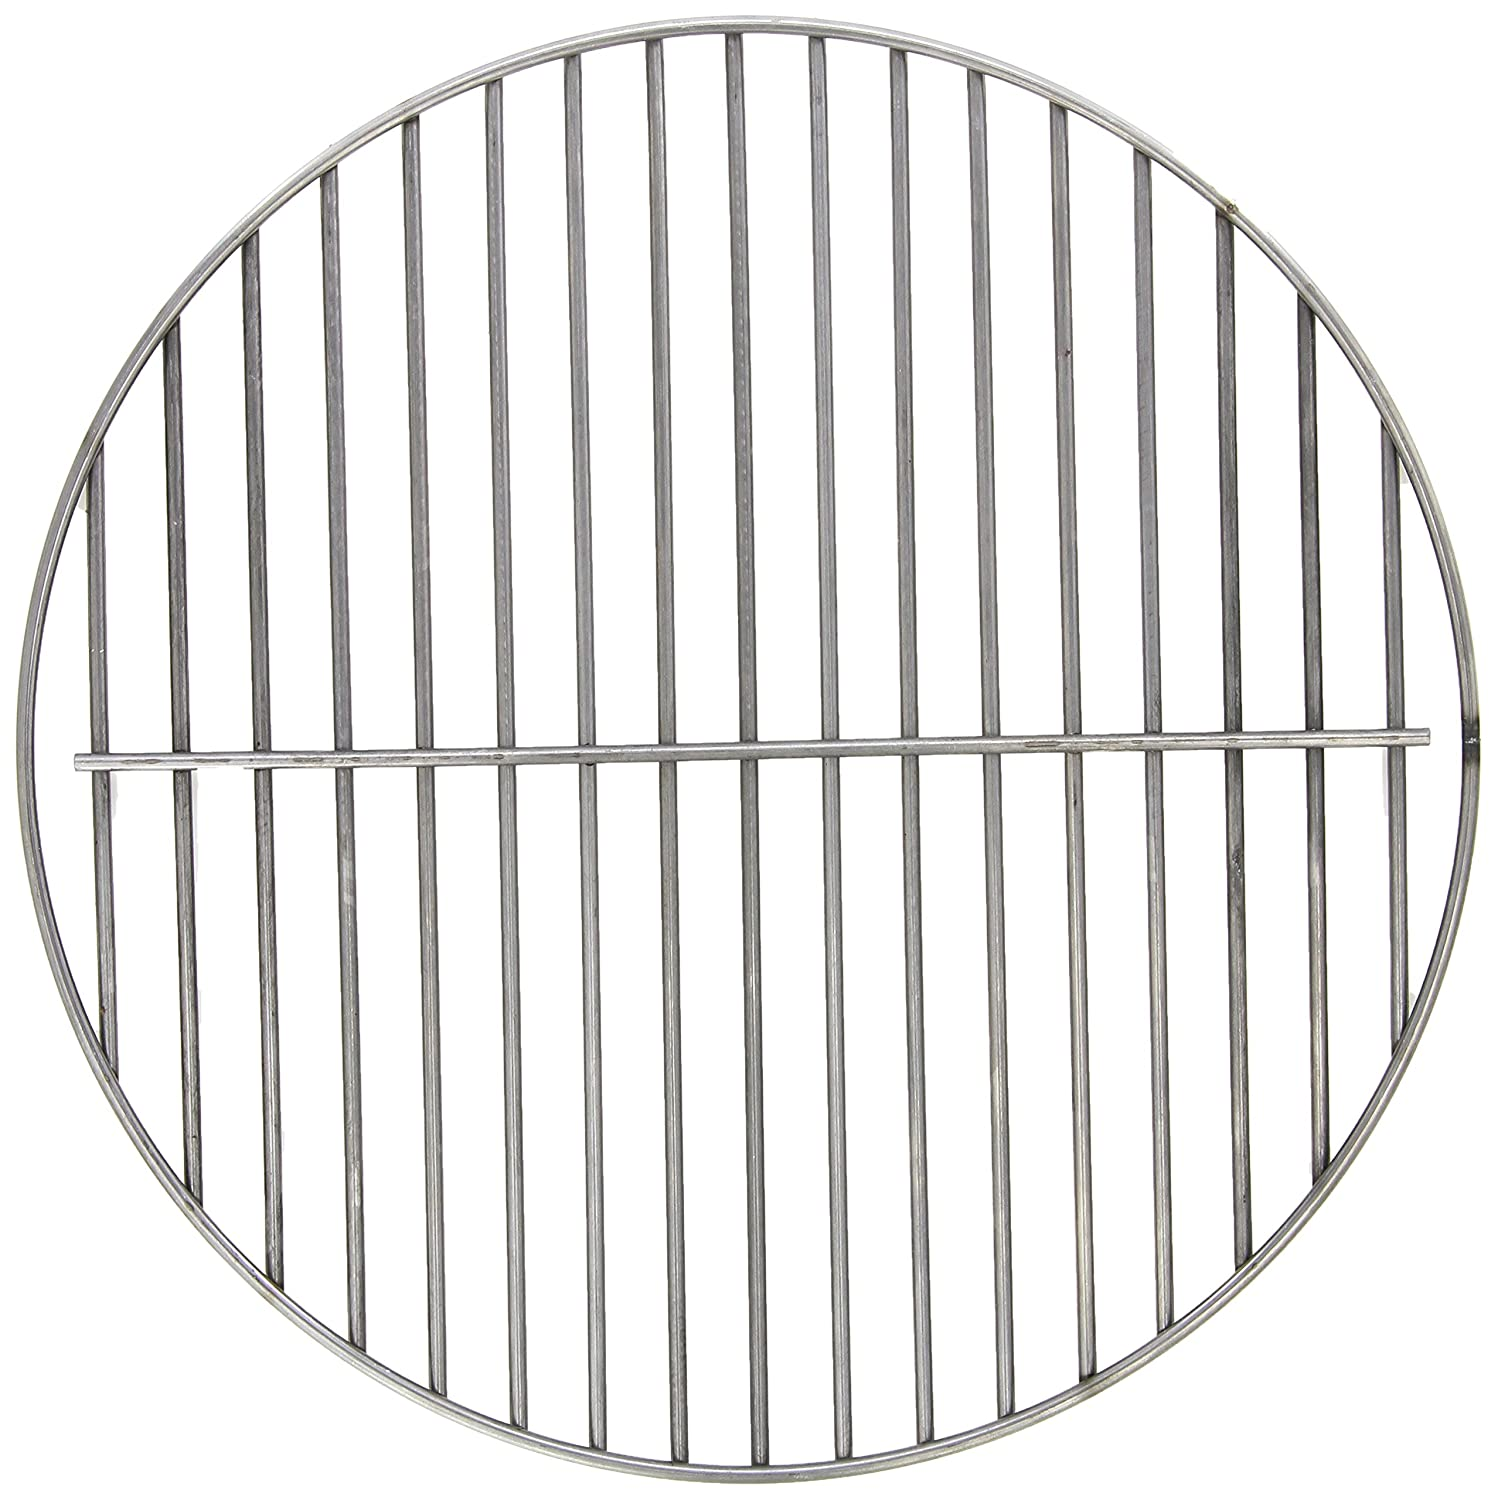 Weber 7440 Plated-Steel Charcoal Grate, 13.5 inches WEBER-STEPHEN